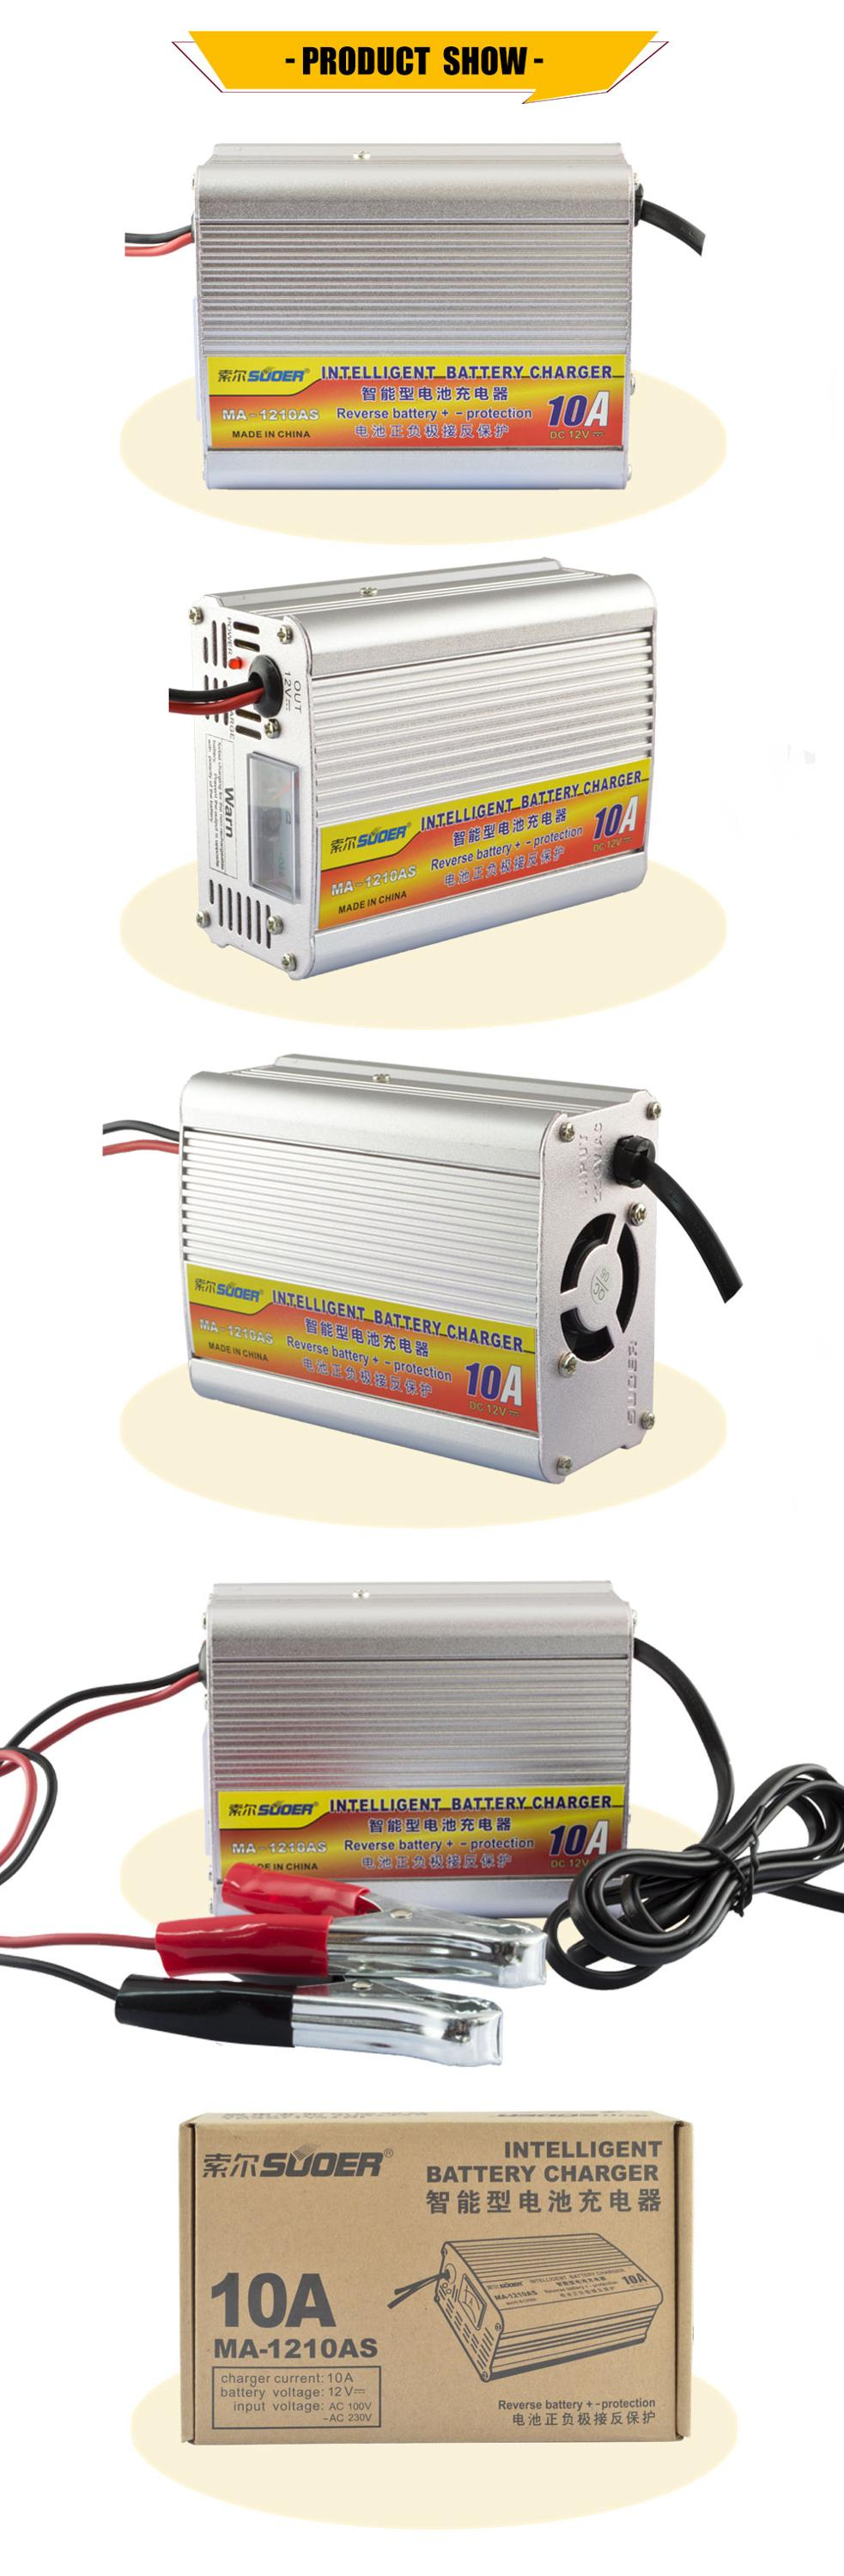 Suoer Three-phase Smart Fast 12V 10ah lead acid Battery Charger With Digital LCD Display